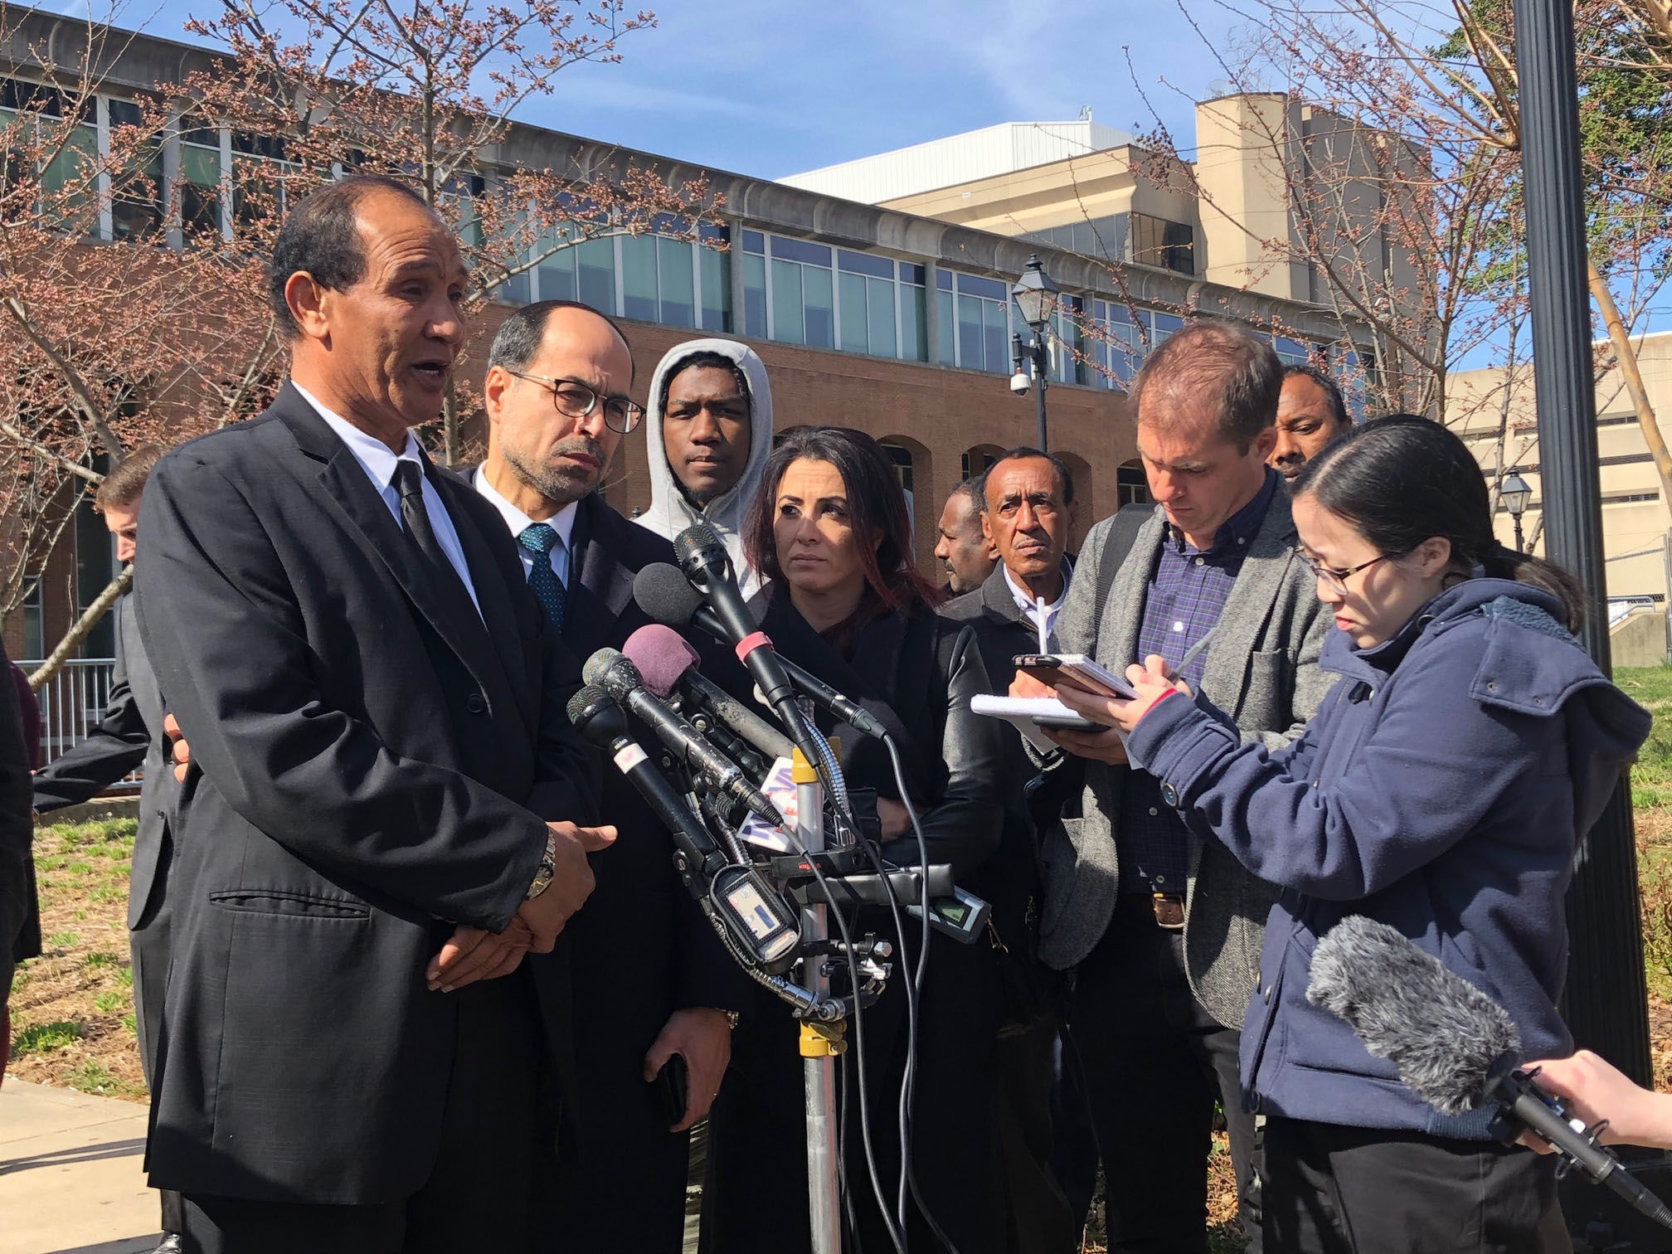 Nabra Hassanen's father, Mohmod Hassanen, gives a statement outside the Fairfax County Courthouse after Darwin Martinez-Torres was sentenced to life in prison without parole in the killing and rape of his daughter. (WTOP/Megan Cloherty)